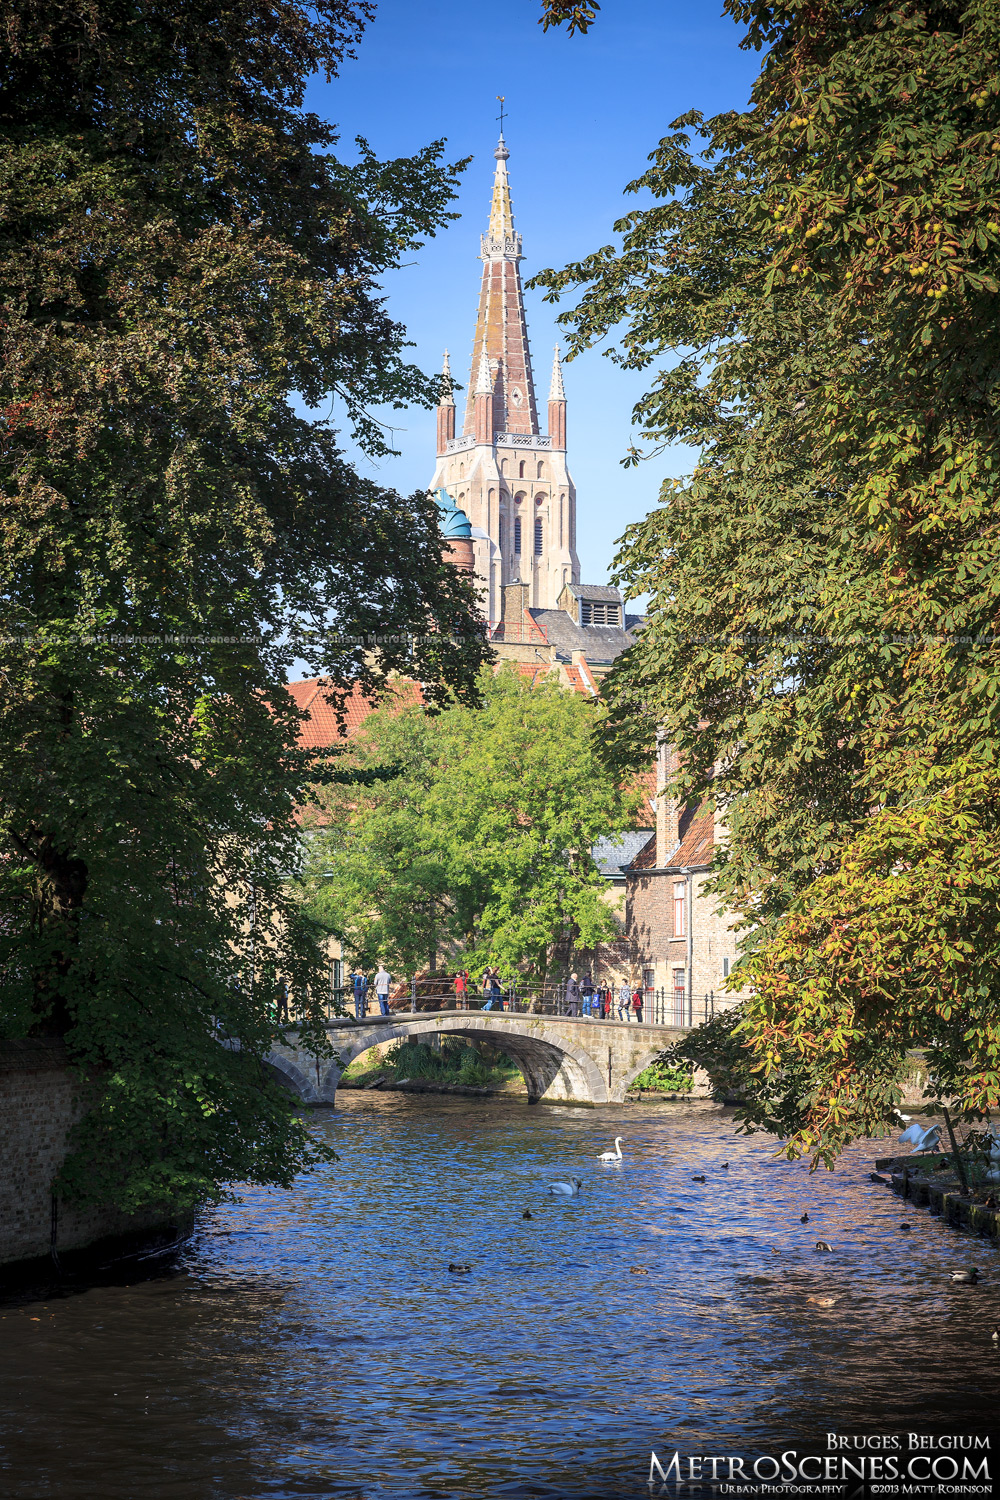 View of Church of Our Lady and canal from Begijnhof